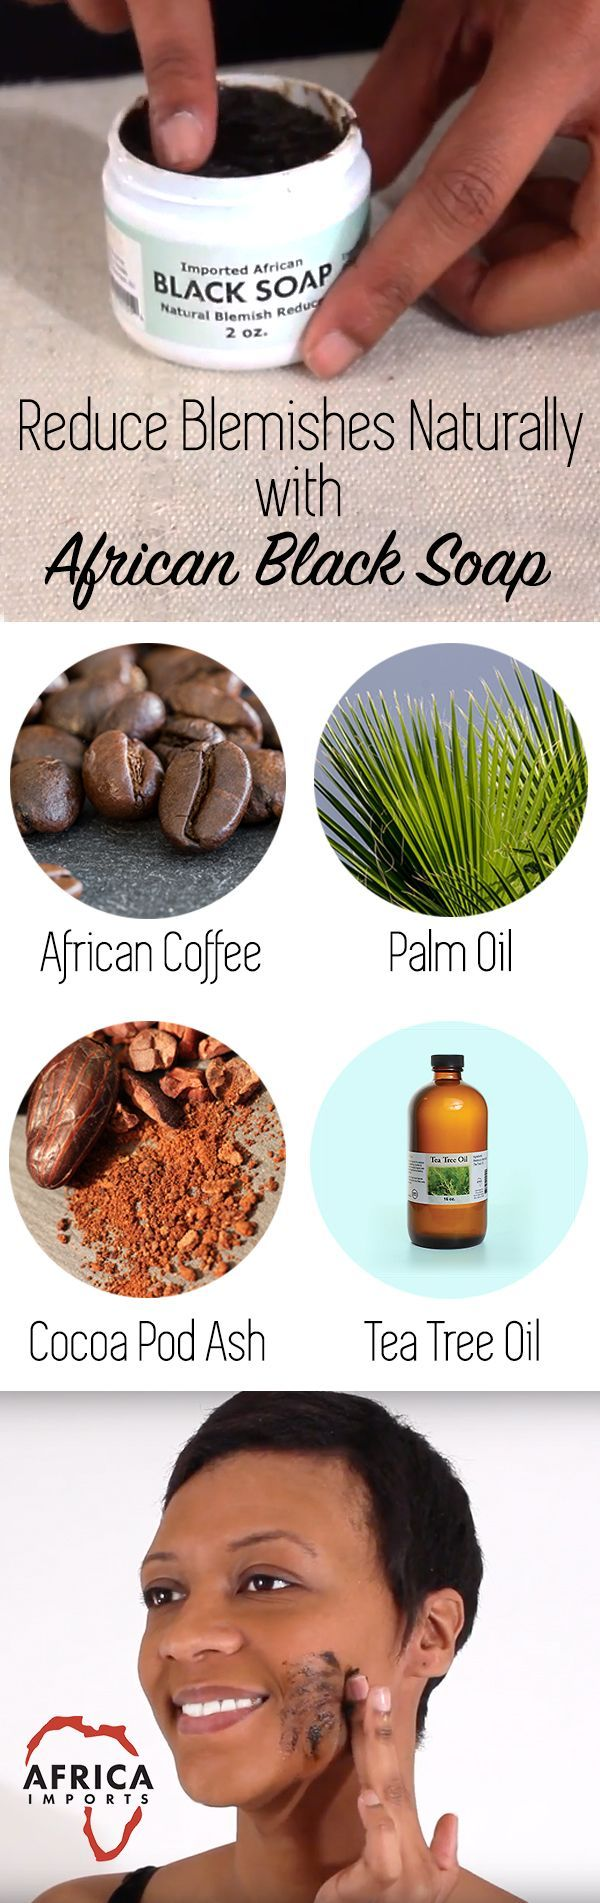 Reduce Blemishes Naturally with Black African Soap - This all natural soap is made with traditional African ingredients including African Coffee, Palm Oil, Cocoa Pod Ash, and Tea Tree Oil.  Just use this African black soap daily to naturally reduce acne and blemishes.  We love this all natural non-toxic soap that quickly clears up skin without using toxic chemicals that harm skin.  #nontoxic #naturalremedies #naturalbeauty #allnatural #black #african #beauty #Acne #skincare #skincareproducts